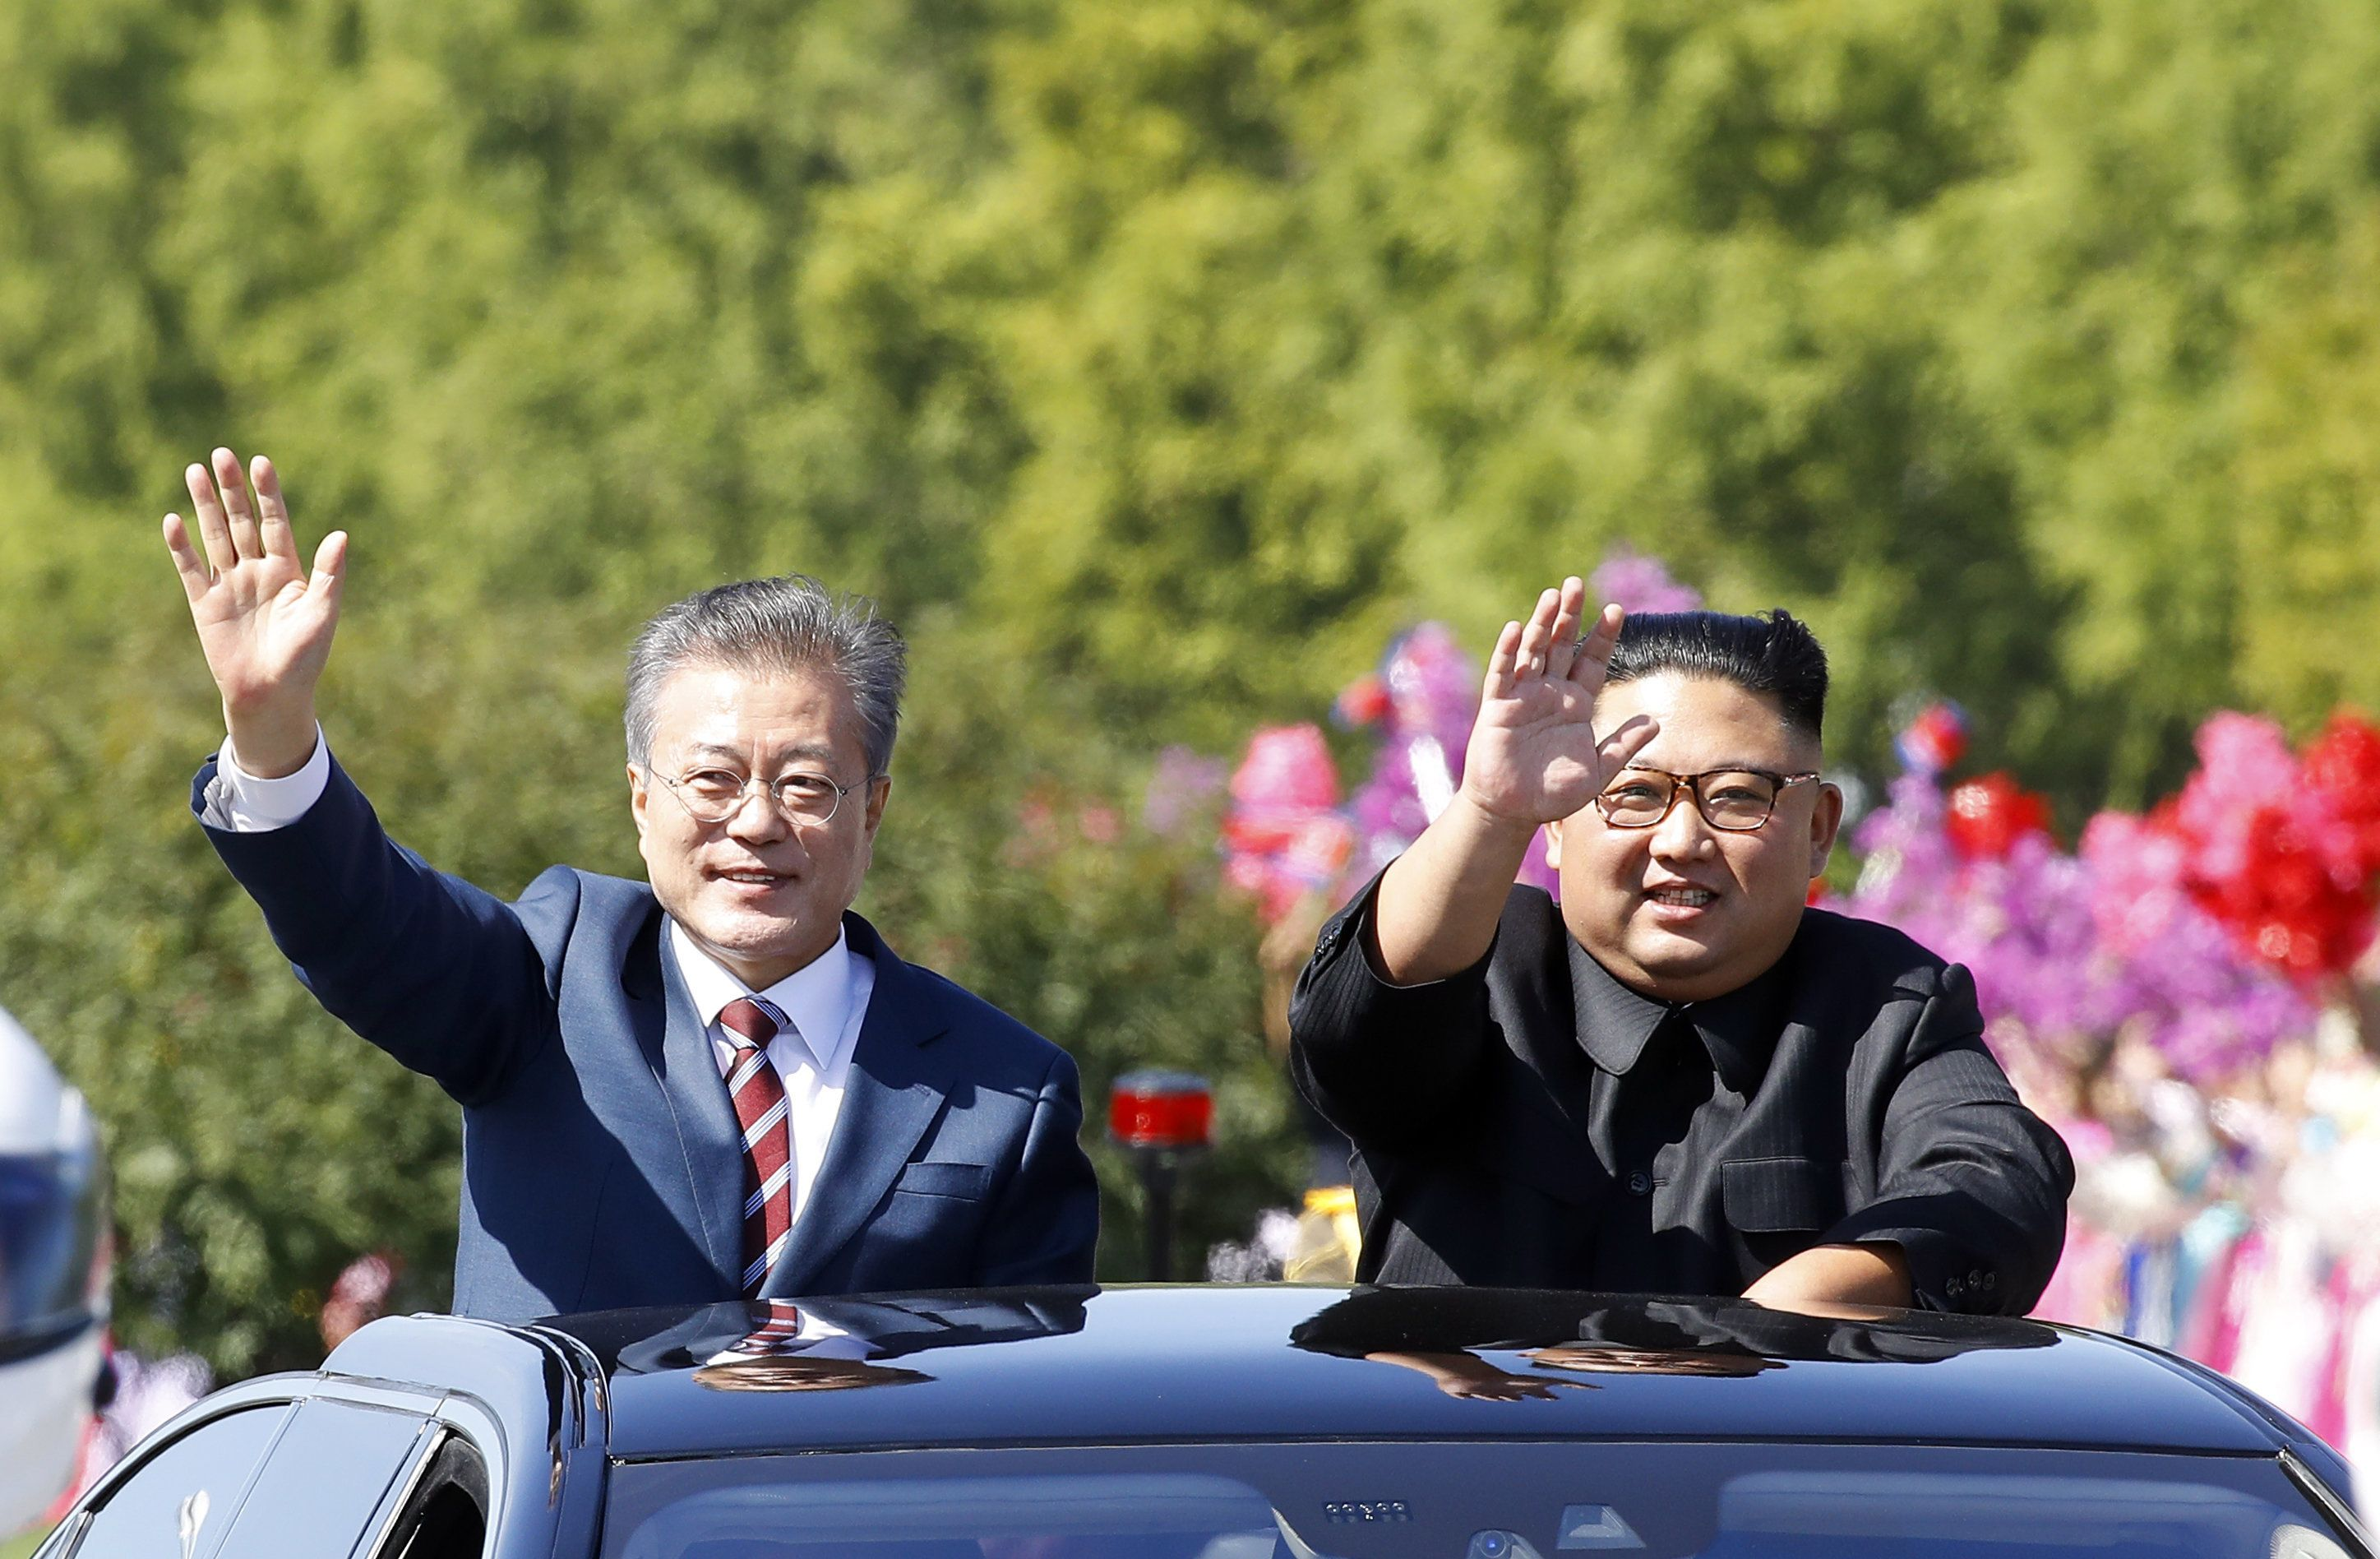 PYONGYANG, NORTH KOREA - SEPTEMBER 18: (EDITORIAL USE ONLY, NO COMMERCIAL USE) South Korean President Moon Jae-in (L) and North Korean leader Kim Jong-un (R) ride in a car parade on September 18, 2018 in Pyongyang, North Korea. Kim and Moon meet for the Inter-Korean summit talks after the 1945 division of the peninsula, and will discuss ways to denuclearize the Korean Peninsula. (Photo by Pyeongyang Press Corps/Getty Images)